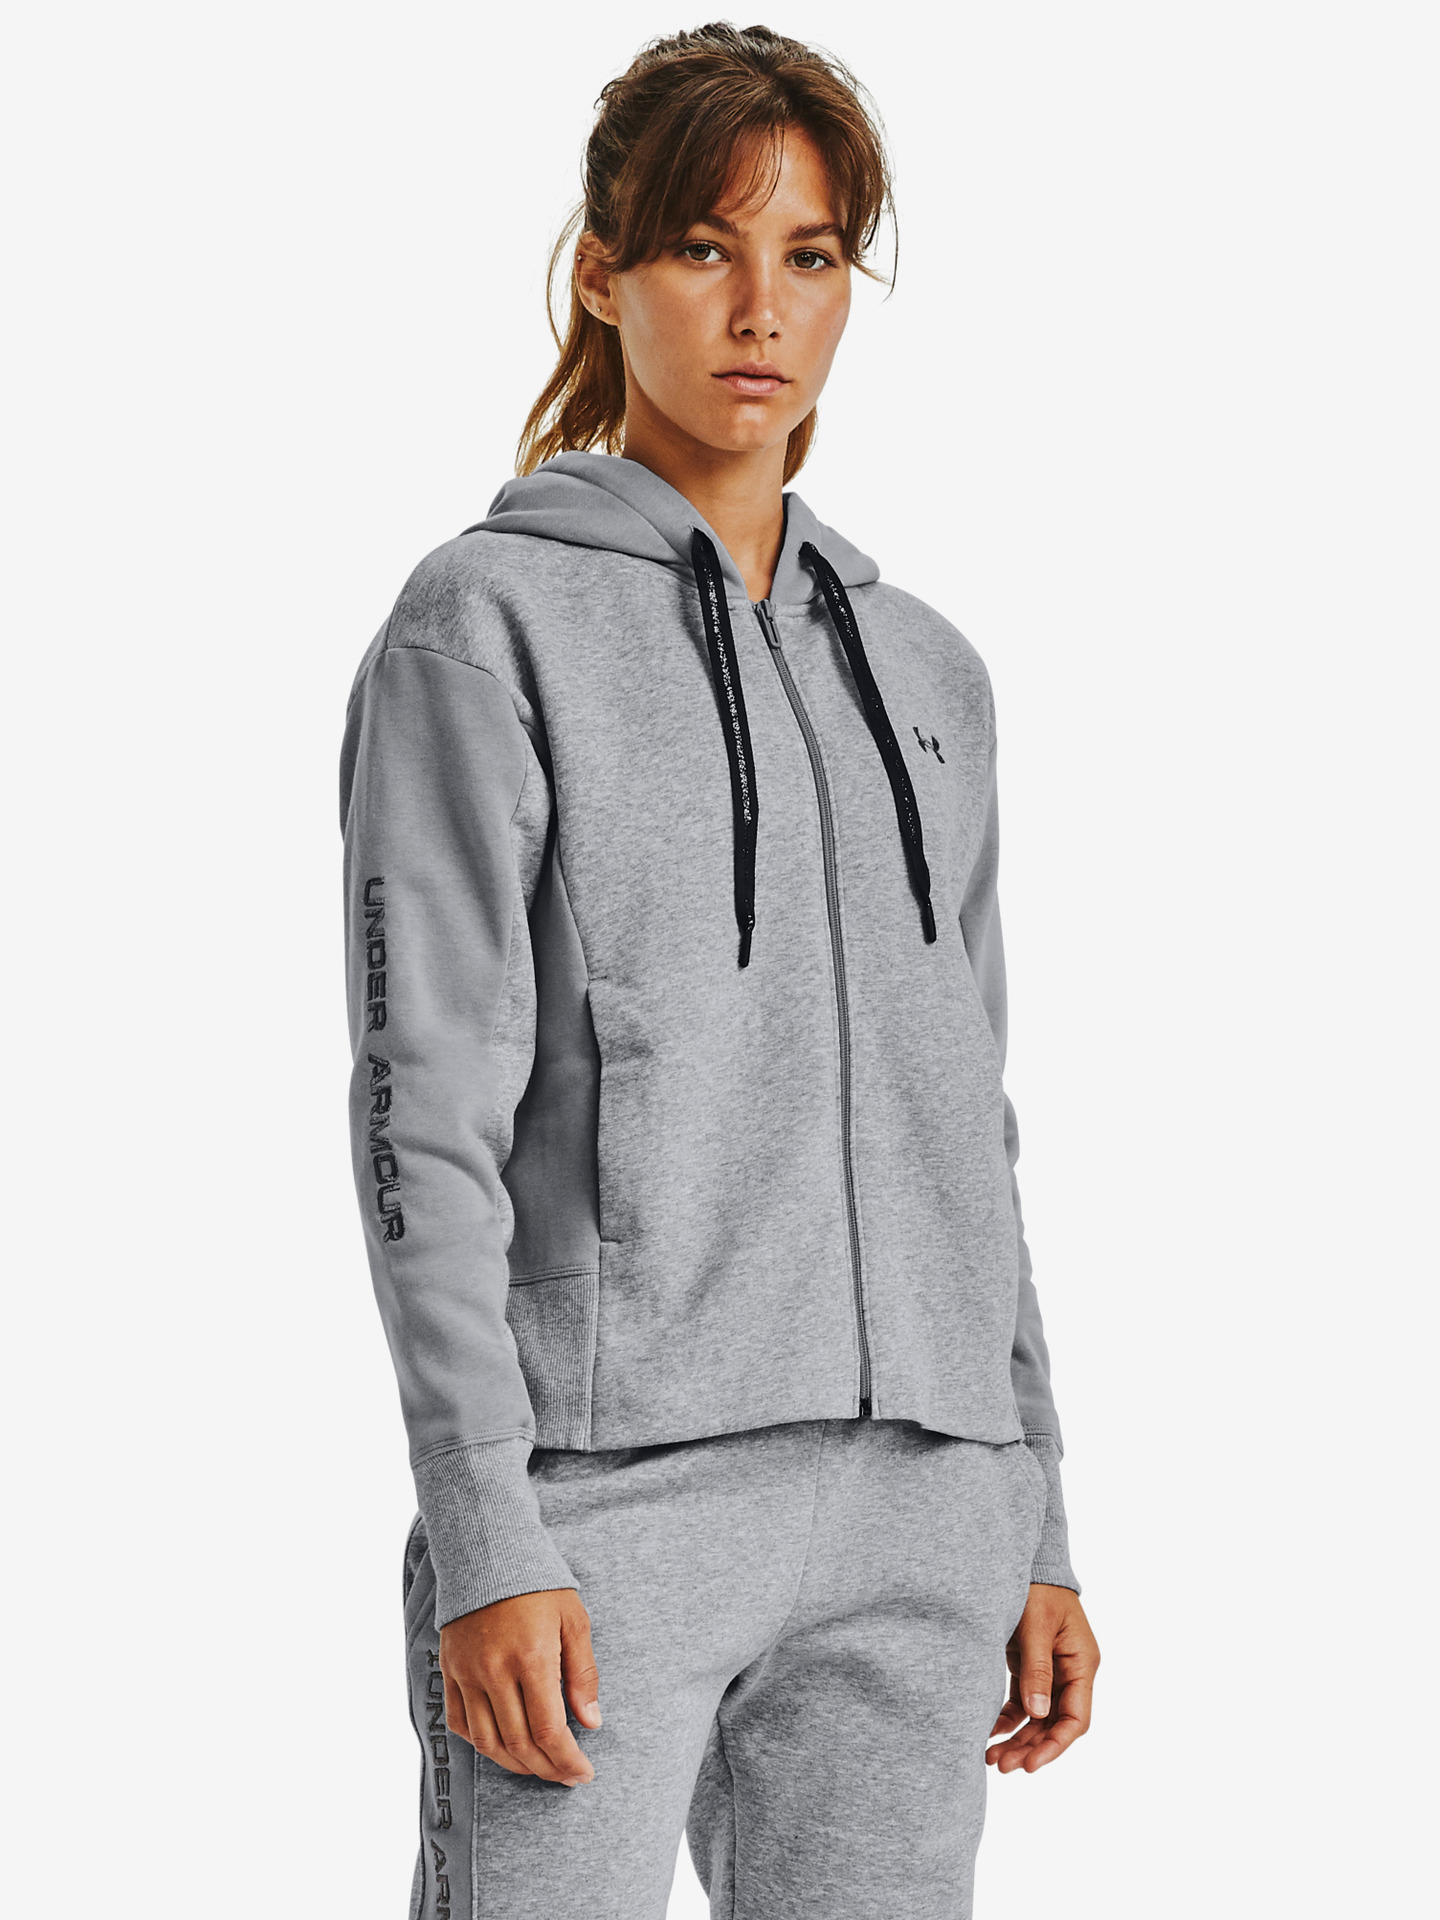 Rival Fleece Embroidered Full Zip Mikina Under Armour Šedá